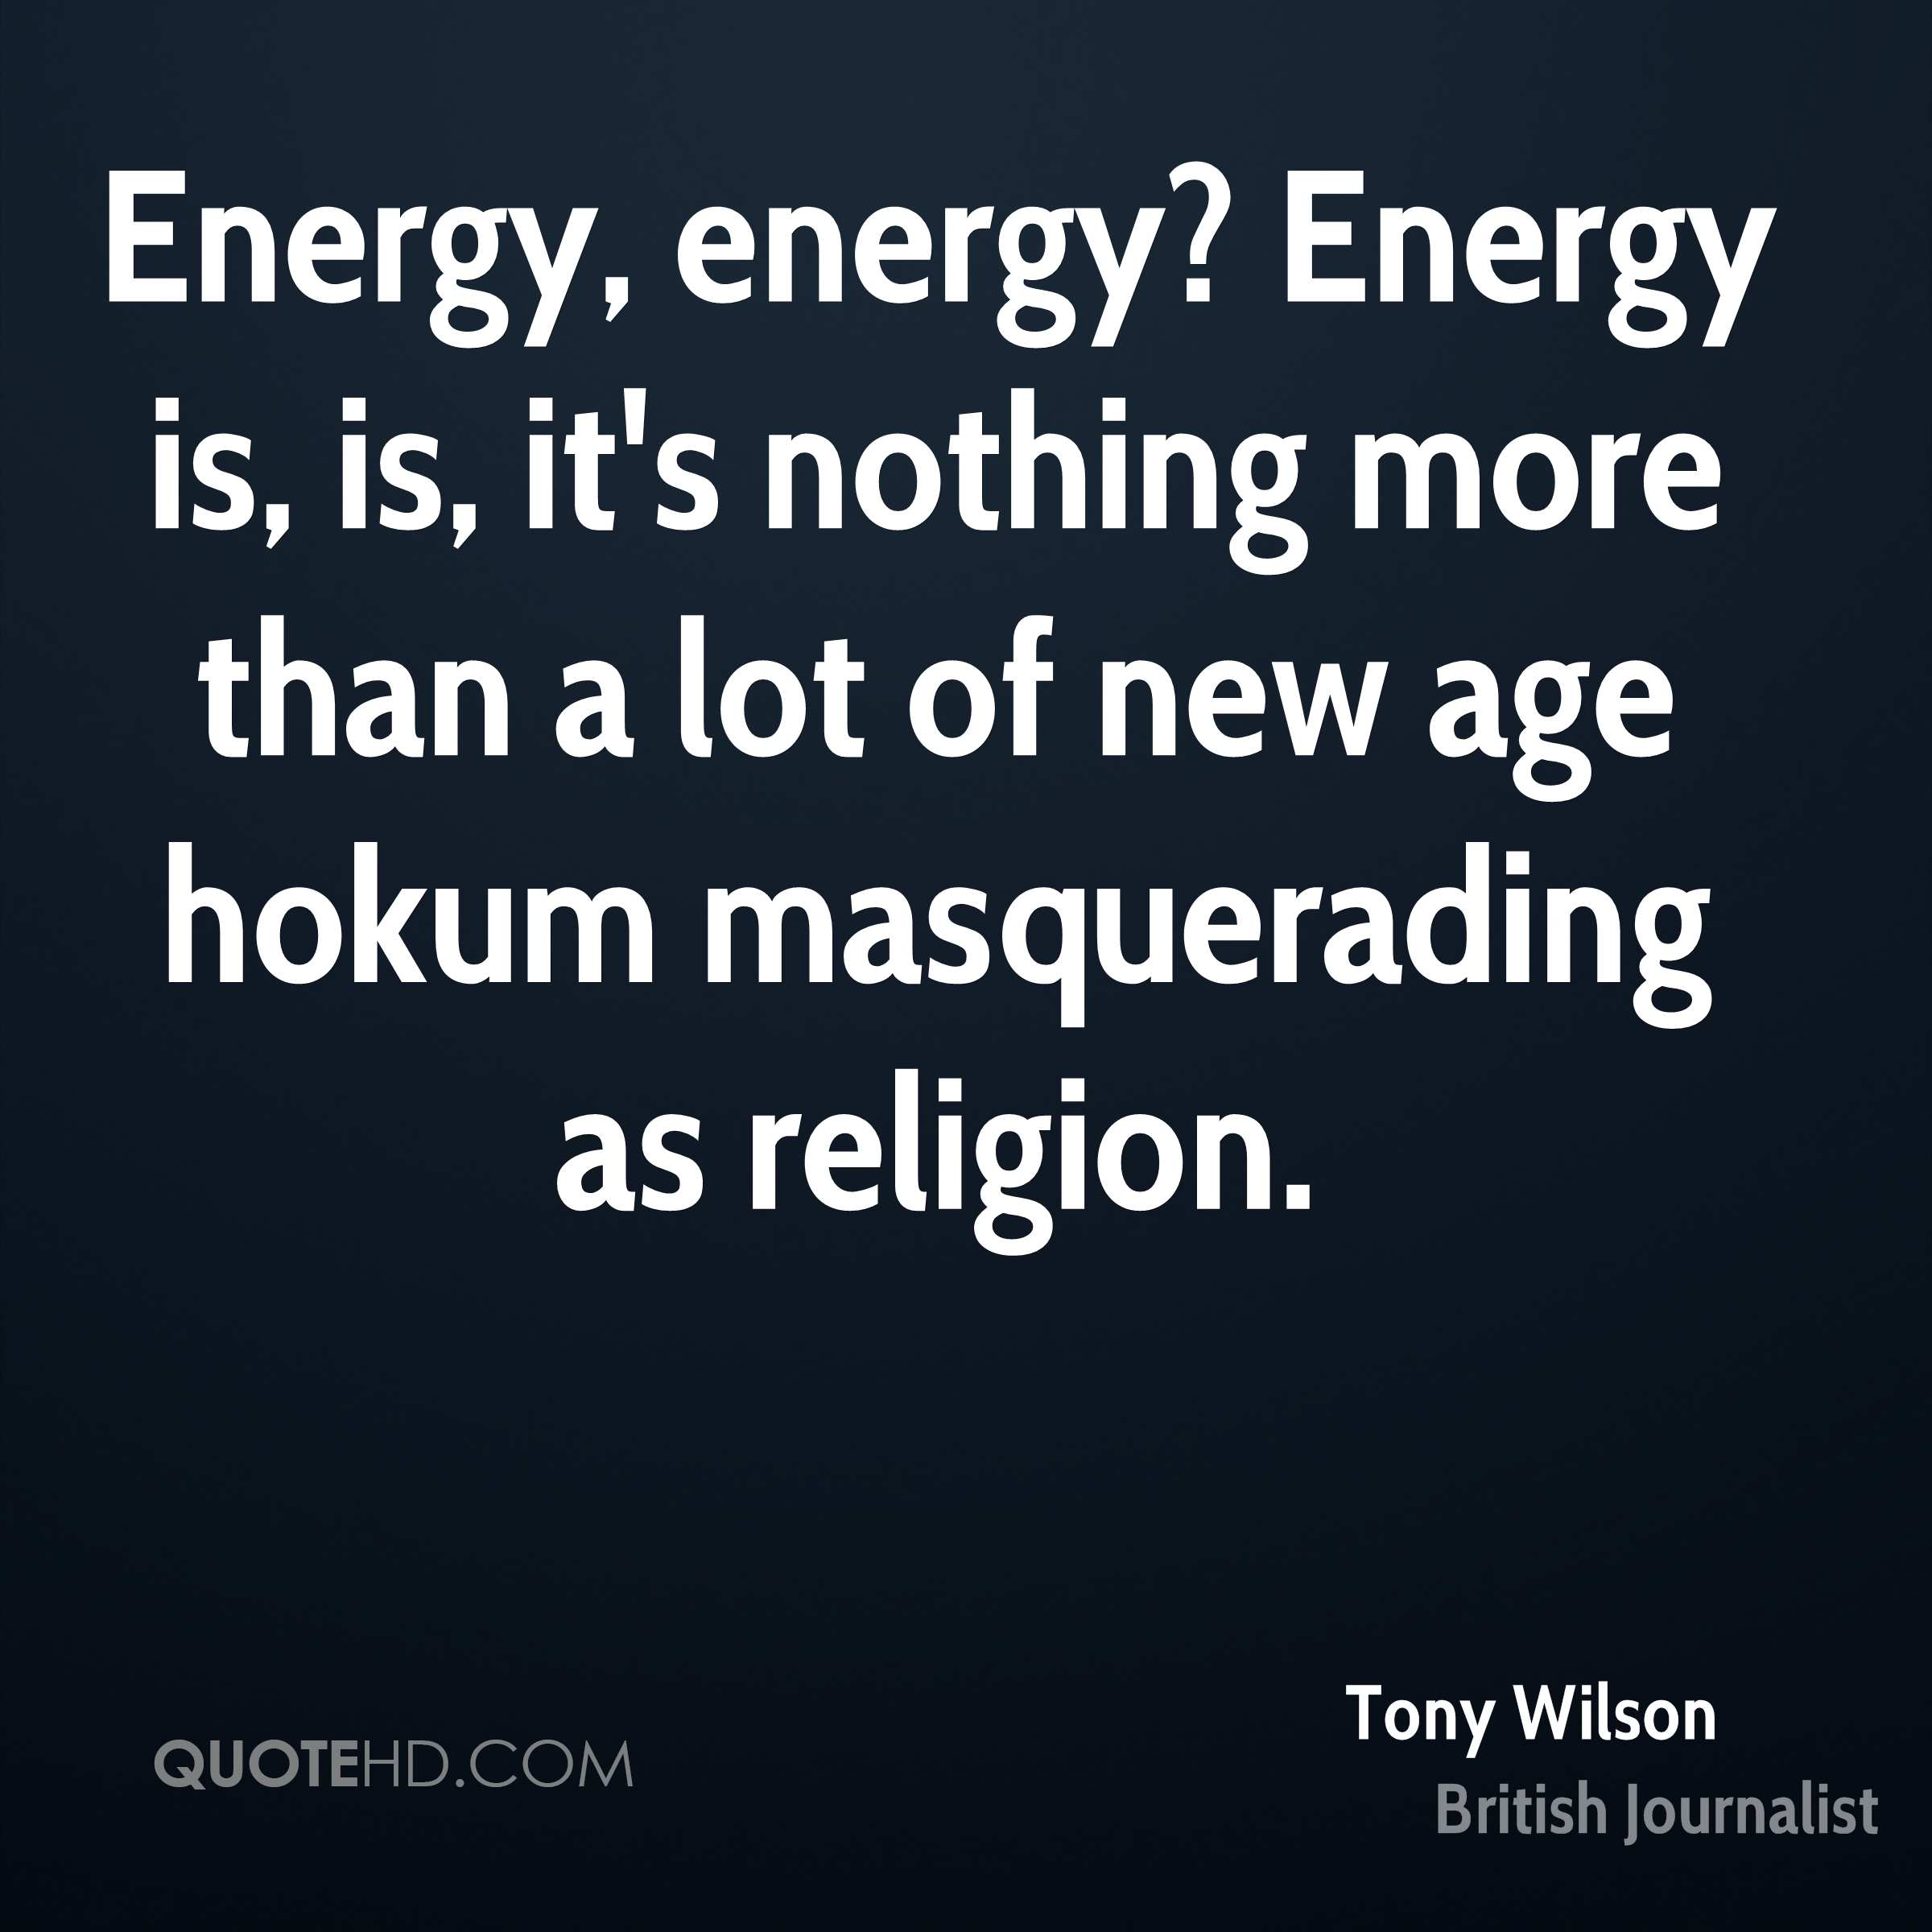 Energy, energy? Energy is, is, it's nothing more than a lot of new age hokum masquerading as religion.